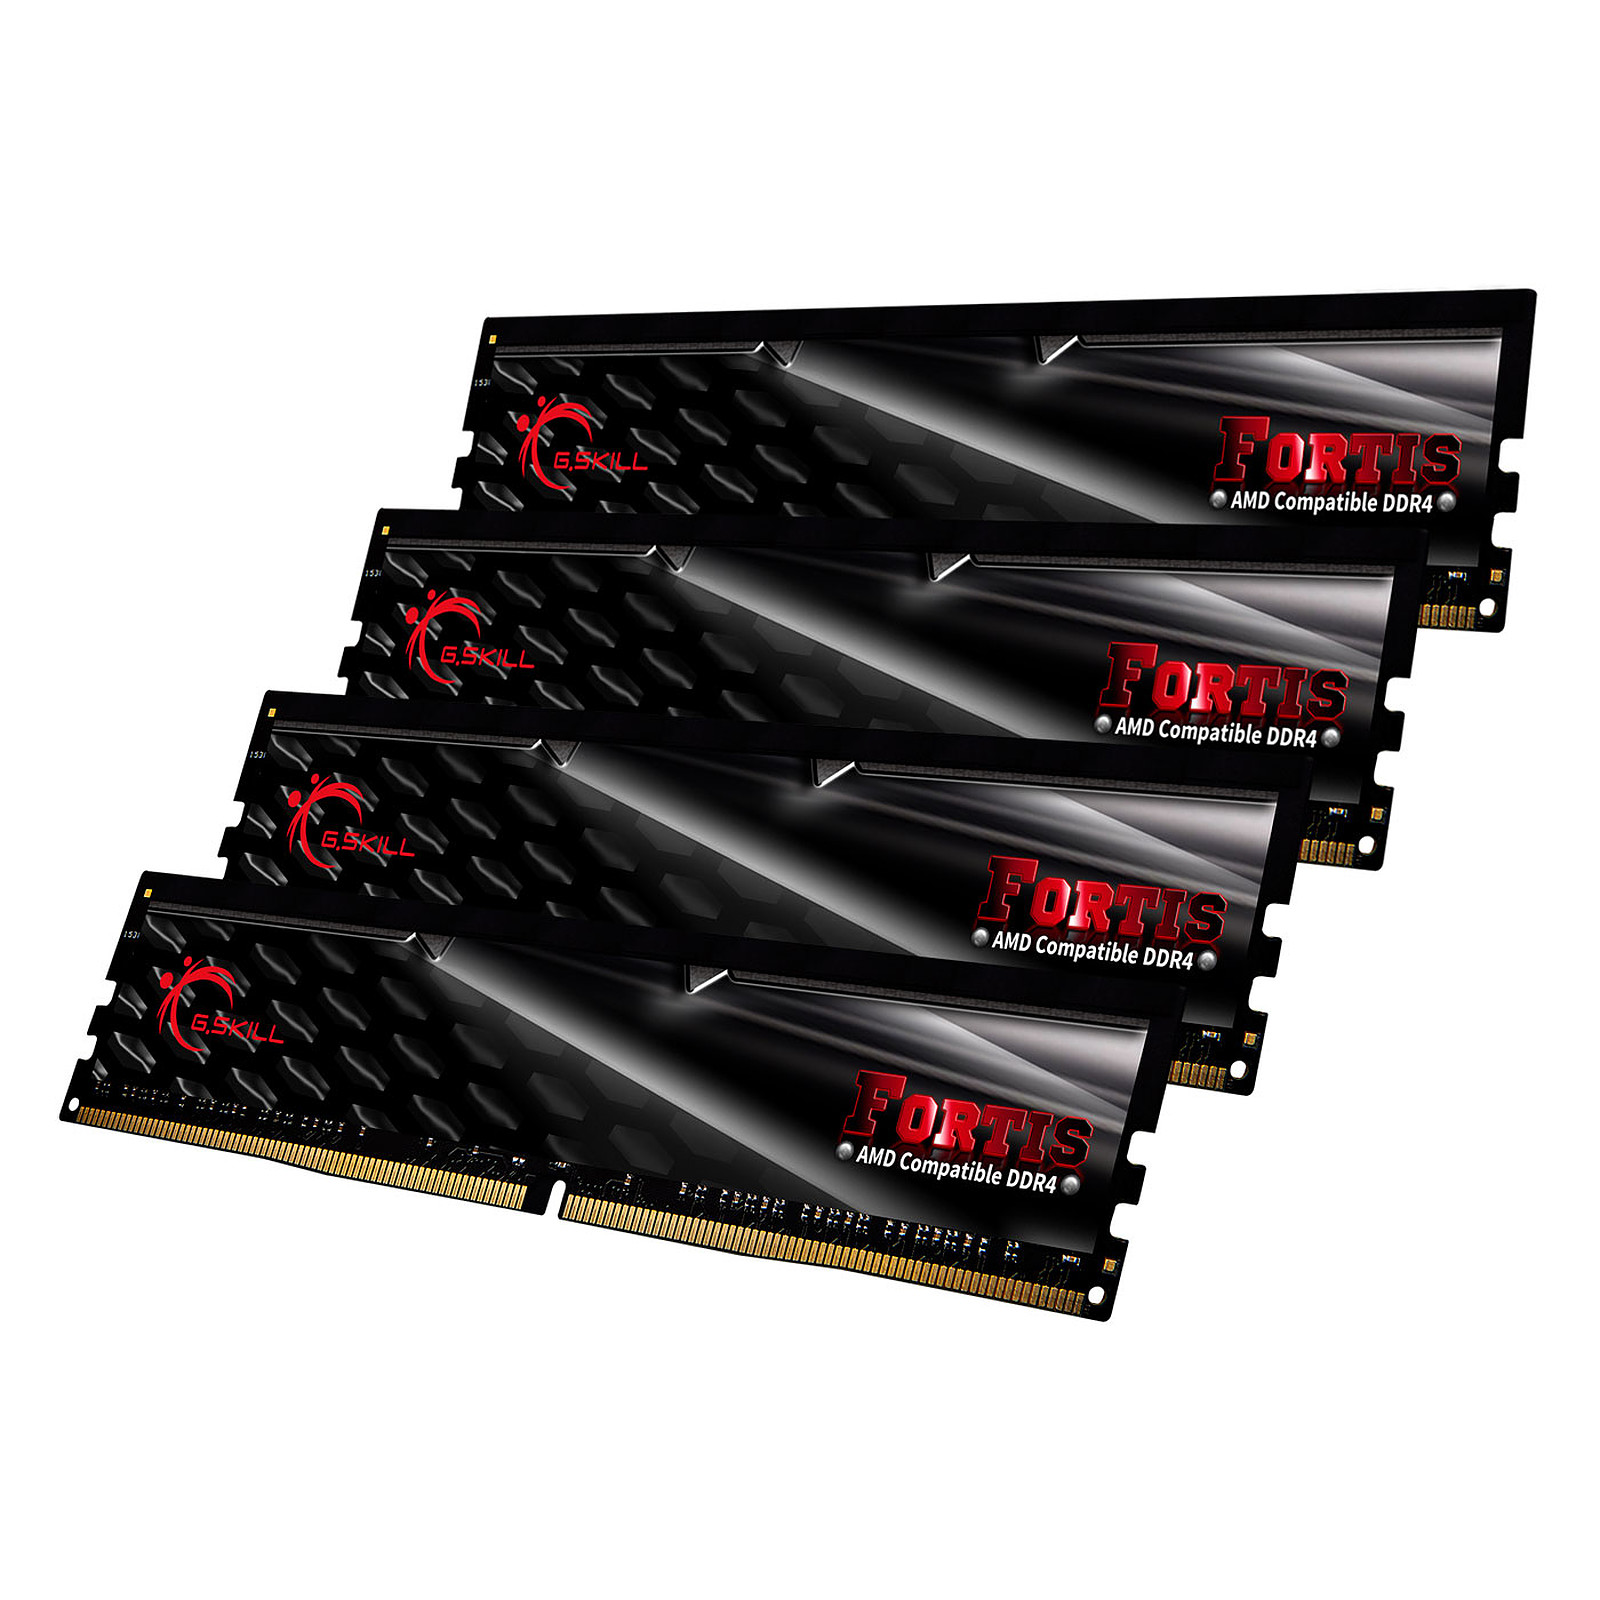 G.Skill Fortis Series 64 Go (4x 16 Go) DDR4 2400 MHz CL16